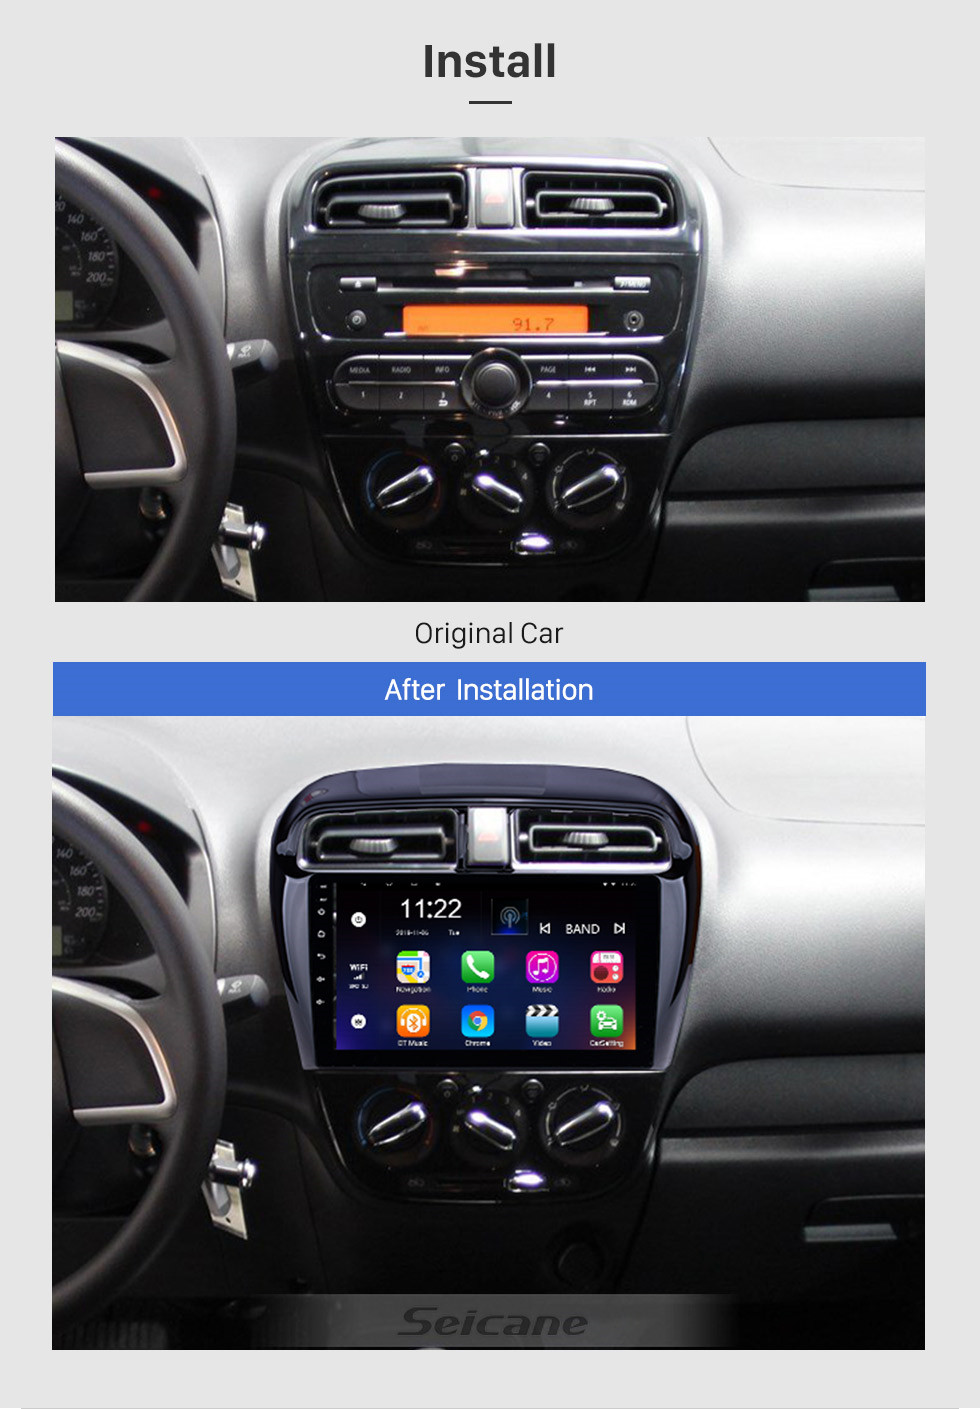 Seicane 2012 2013 2014 2015 2016 Mitsubishi Mirage 9 inch Android 10.0 Car Radio GPS Navigation System with 1024*600 HD Touchscreen Bluetooth music USB WIFI FM Steering Wheel Control support DVR OBD